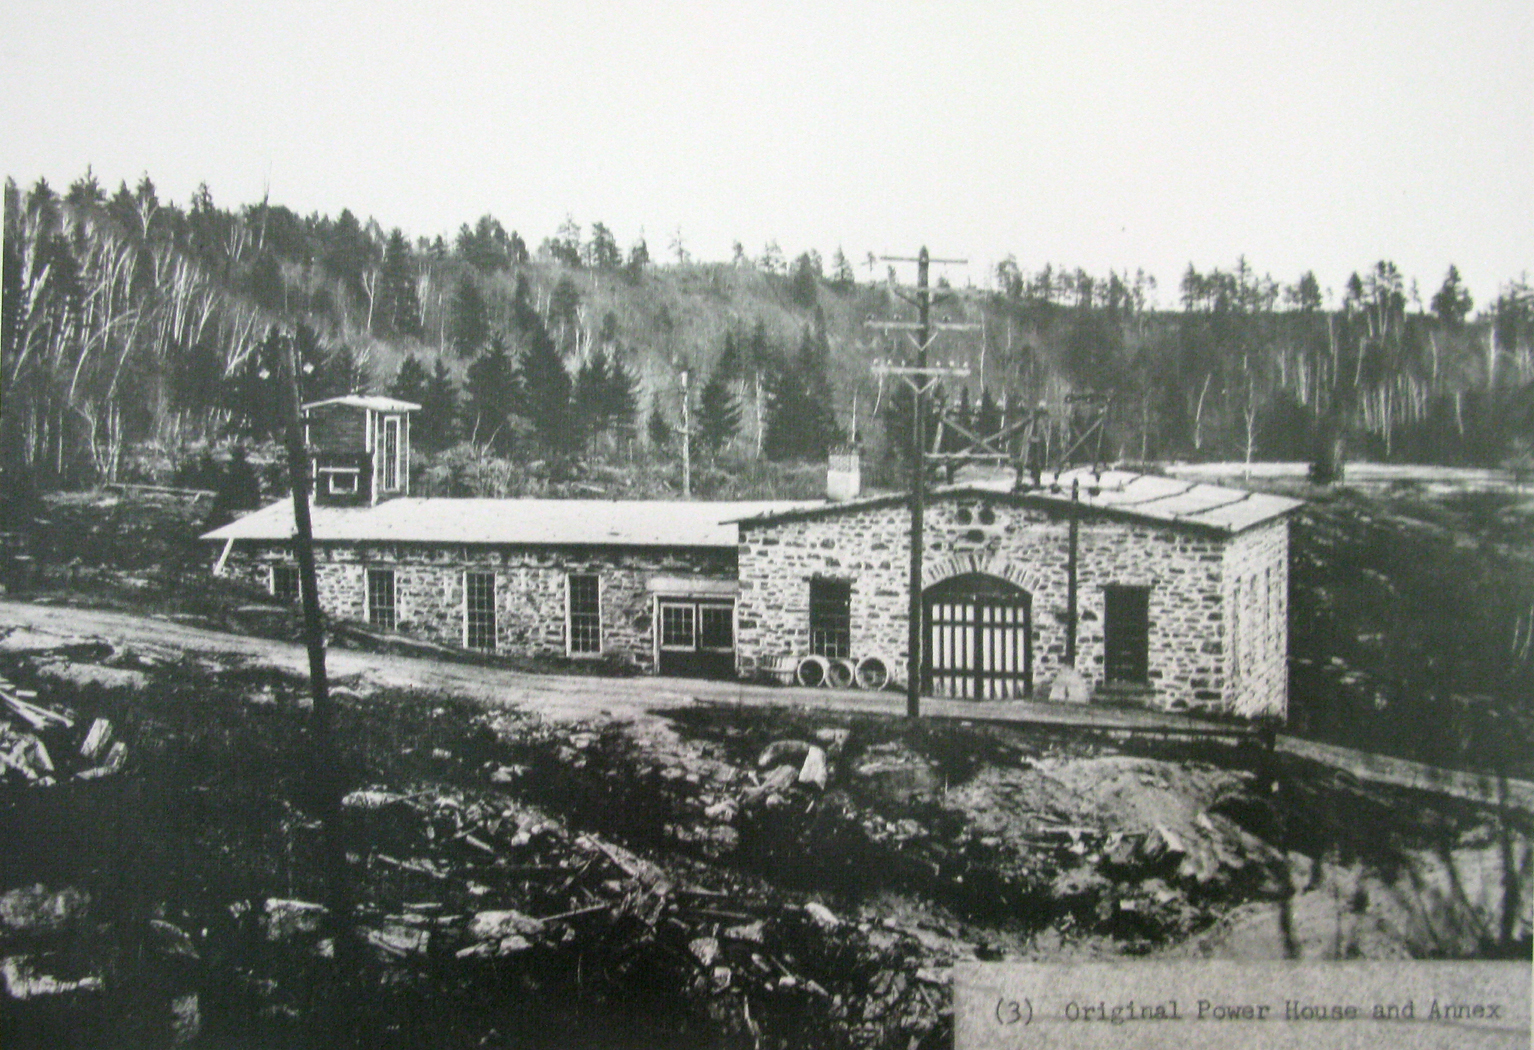 Canadas First Dam For A Hydro Electric Power Plant Saint Narcisse What Is Electrical The Initial In Dated From 1897 Which Left Part Of Building Photo Taken Photograph Displayed